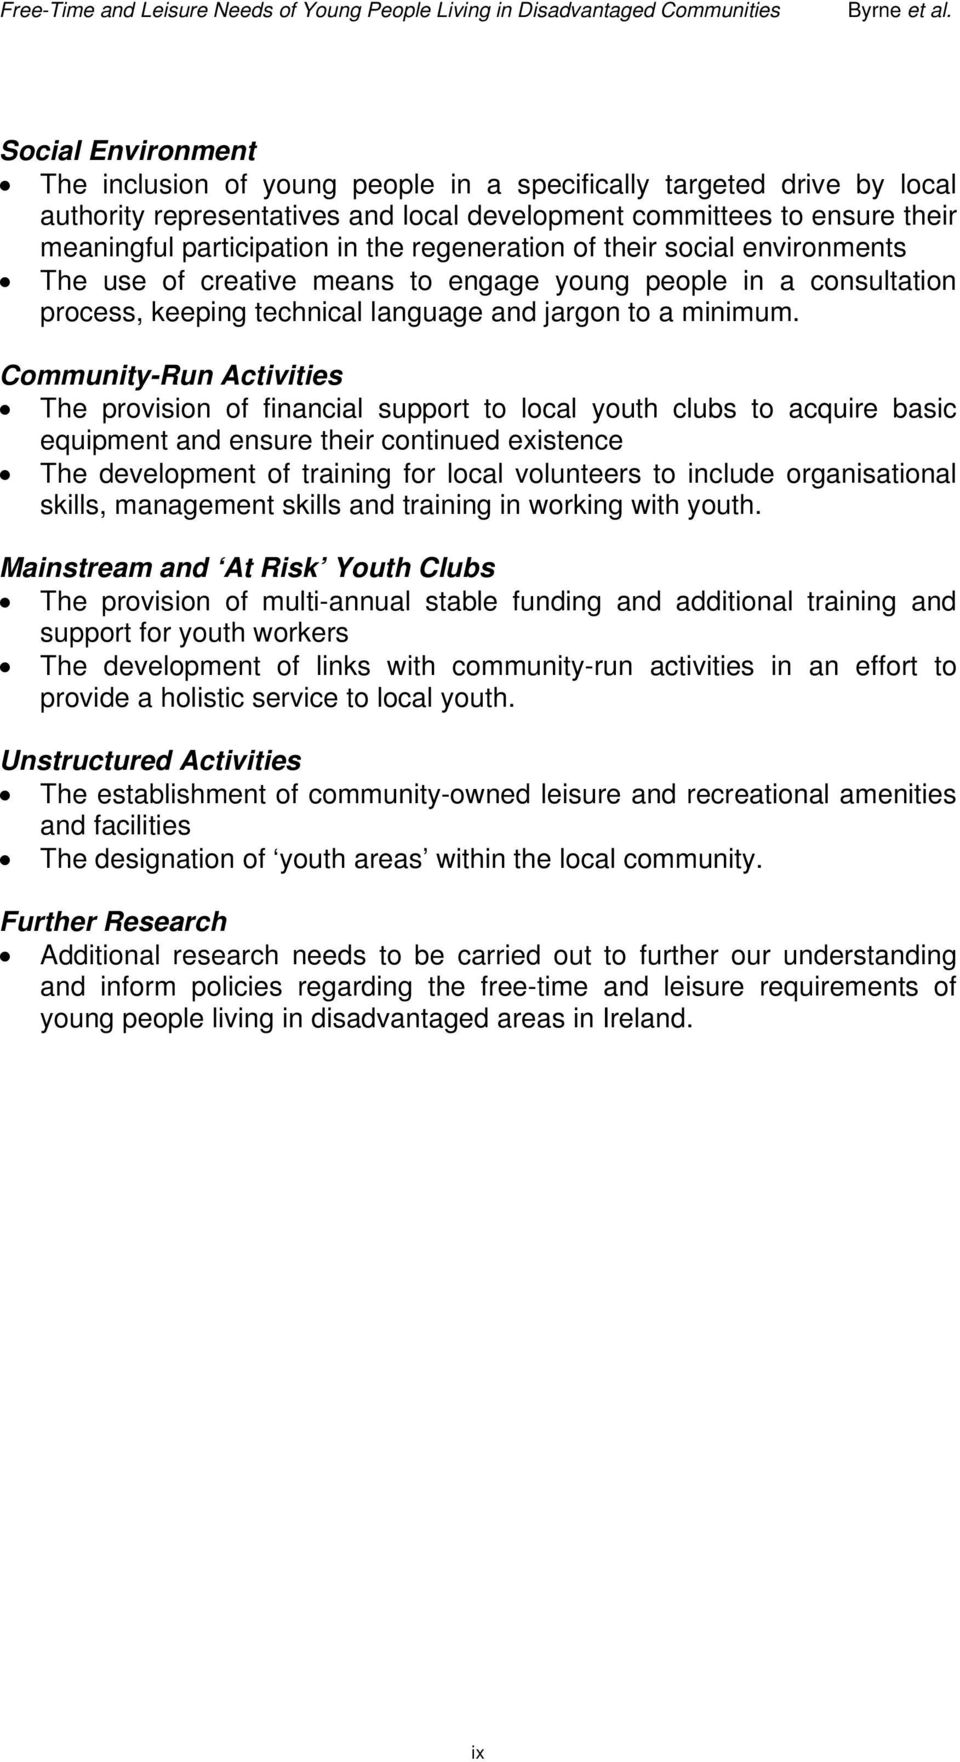 Community-Run Activities The provision of financial support to local youth clubs to acquire basic equipment and ensure their continued existence The development of training for local volunteers to